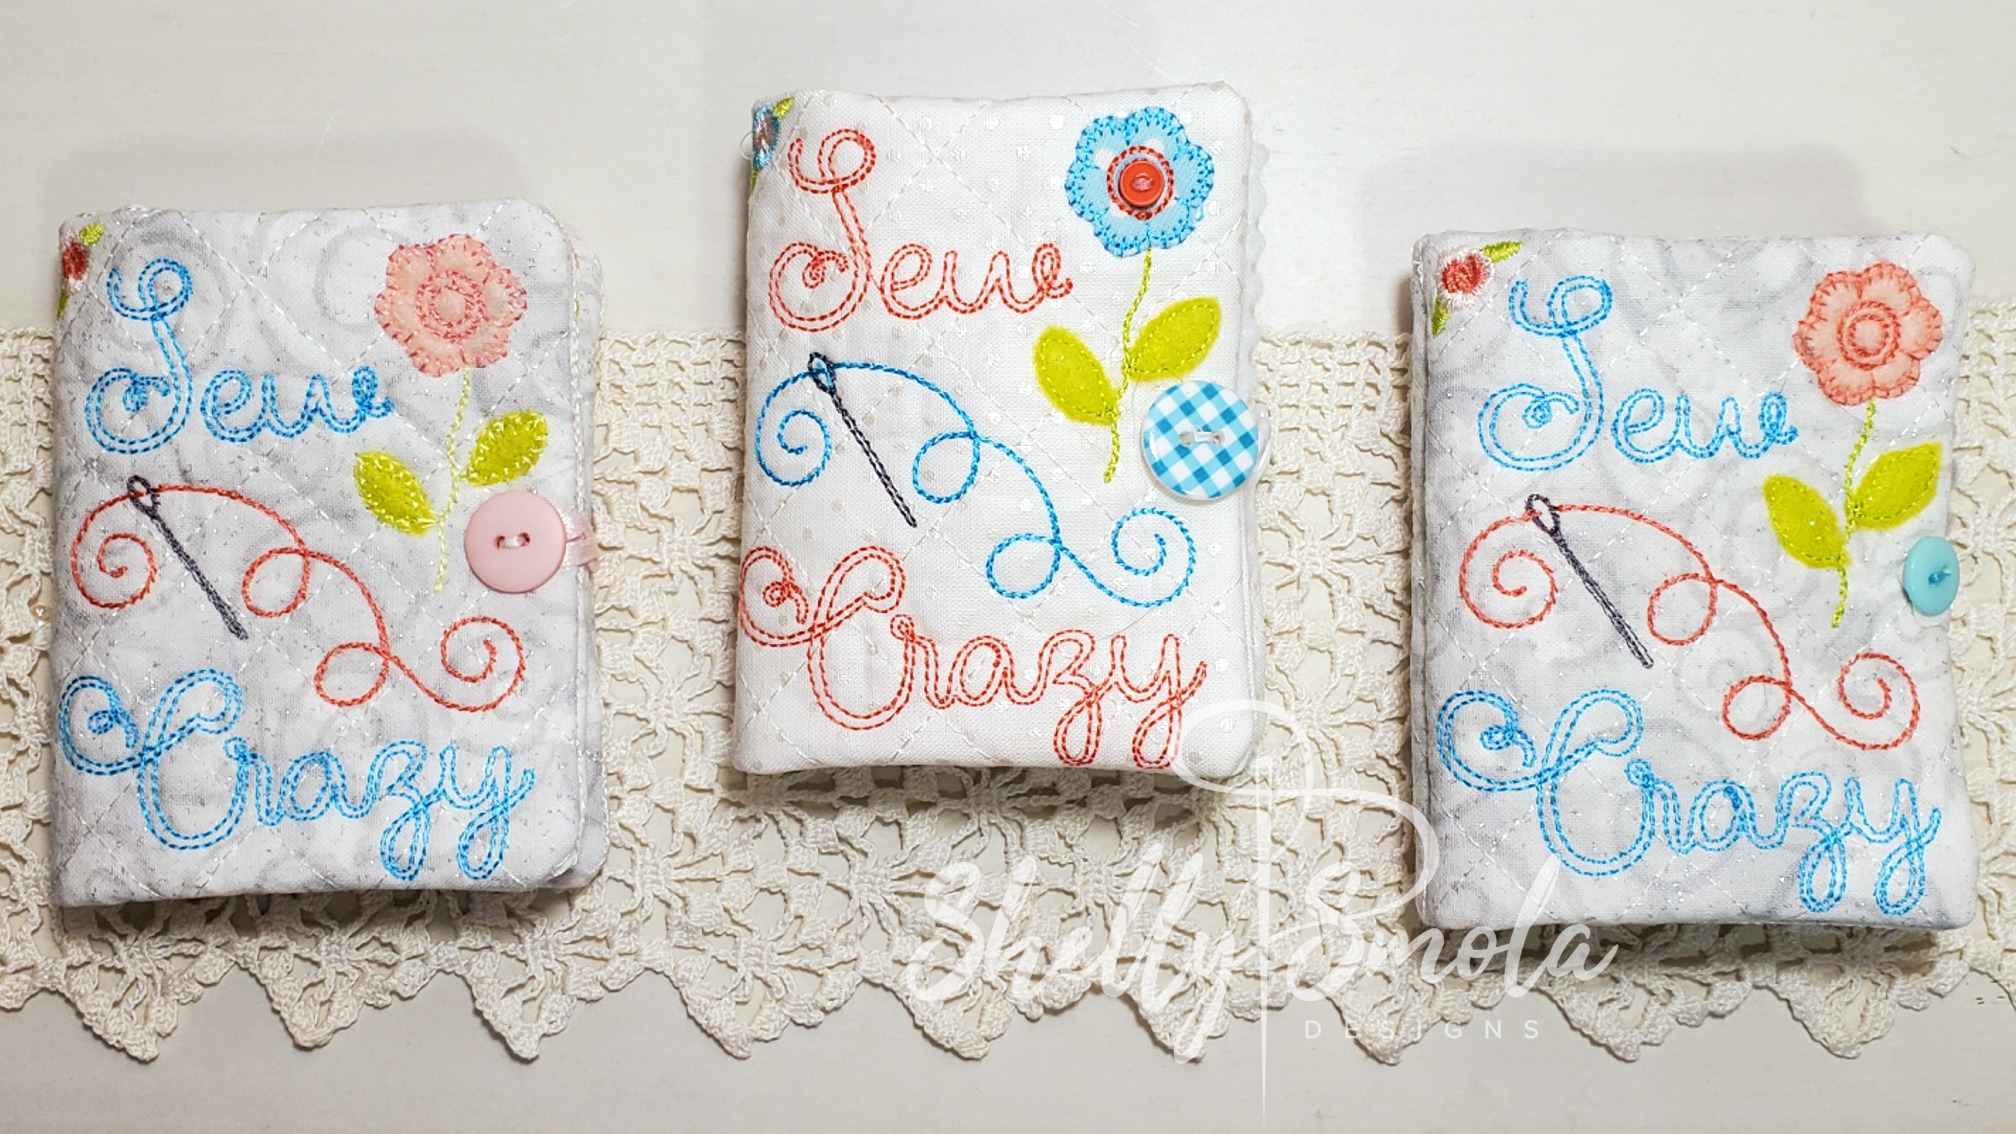 Sew Crazy Needle Book by Shelly Smola